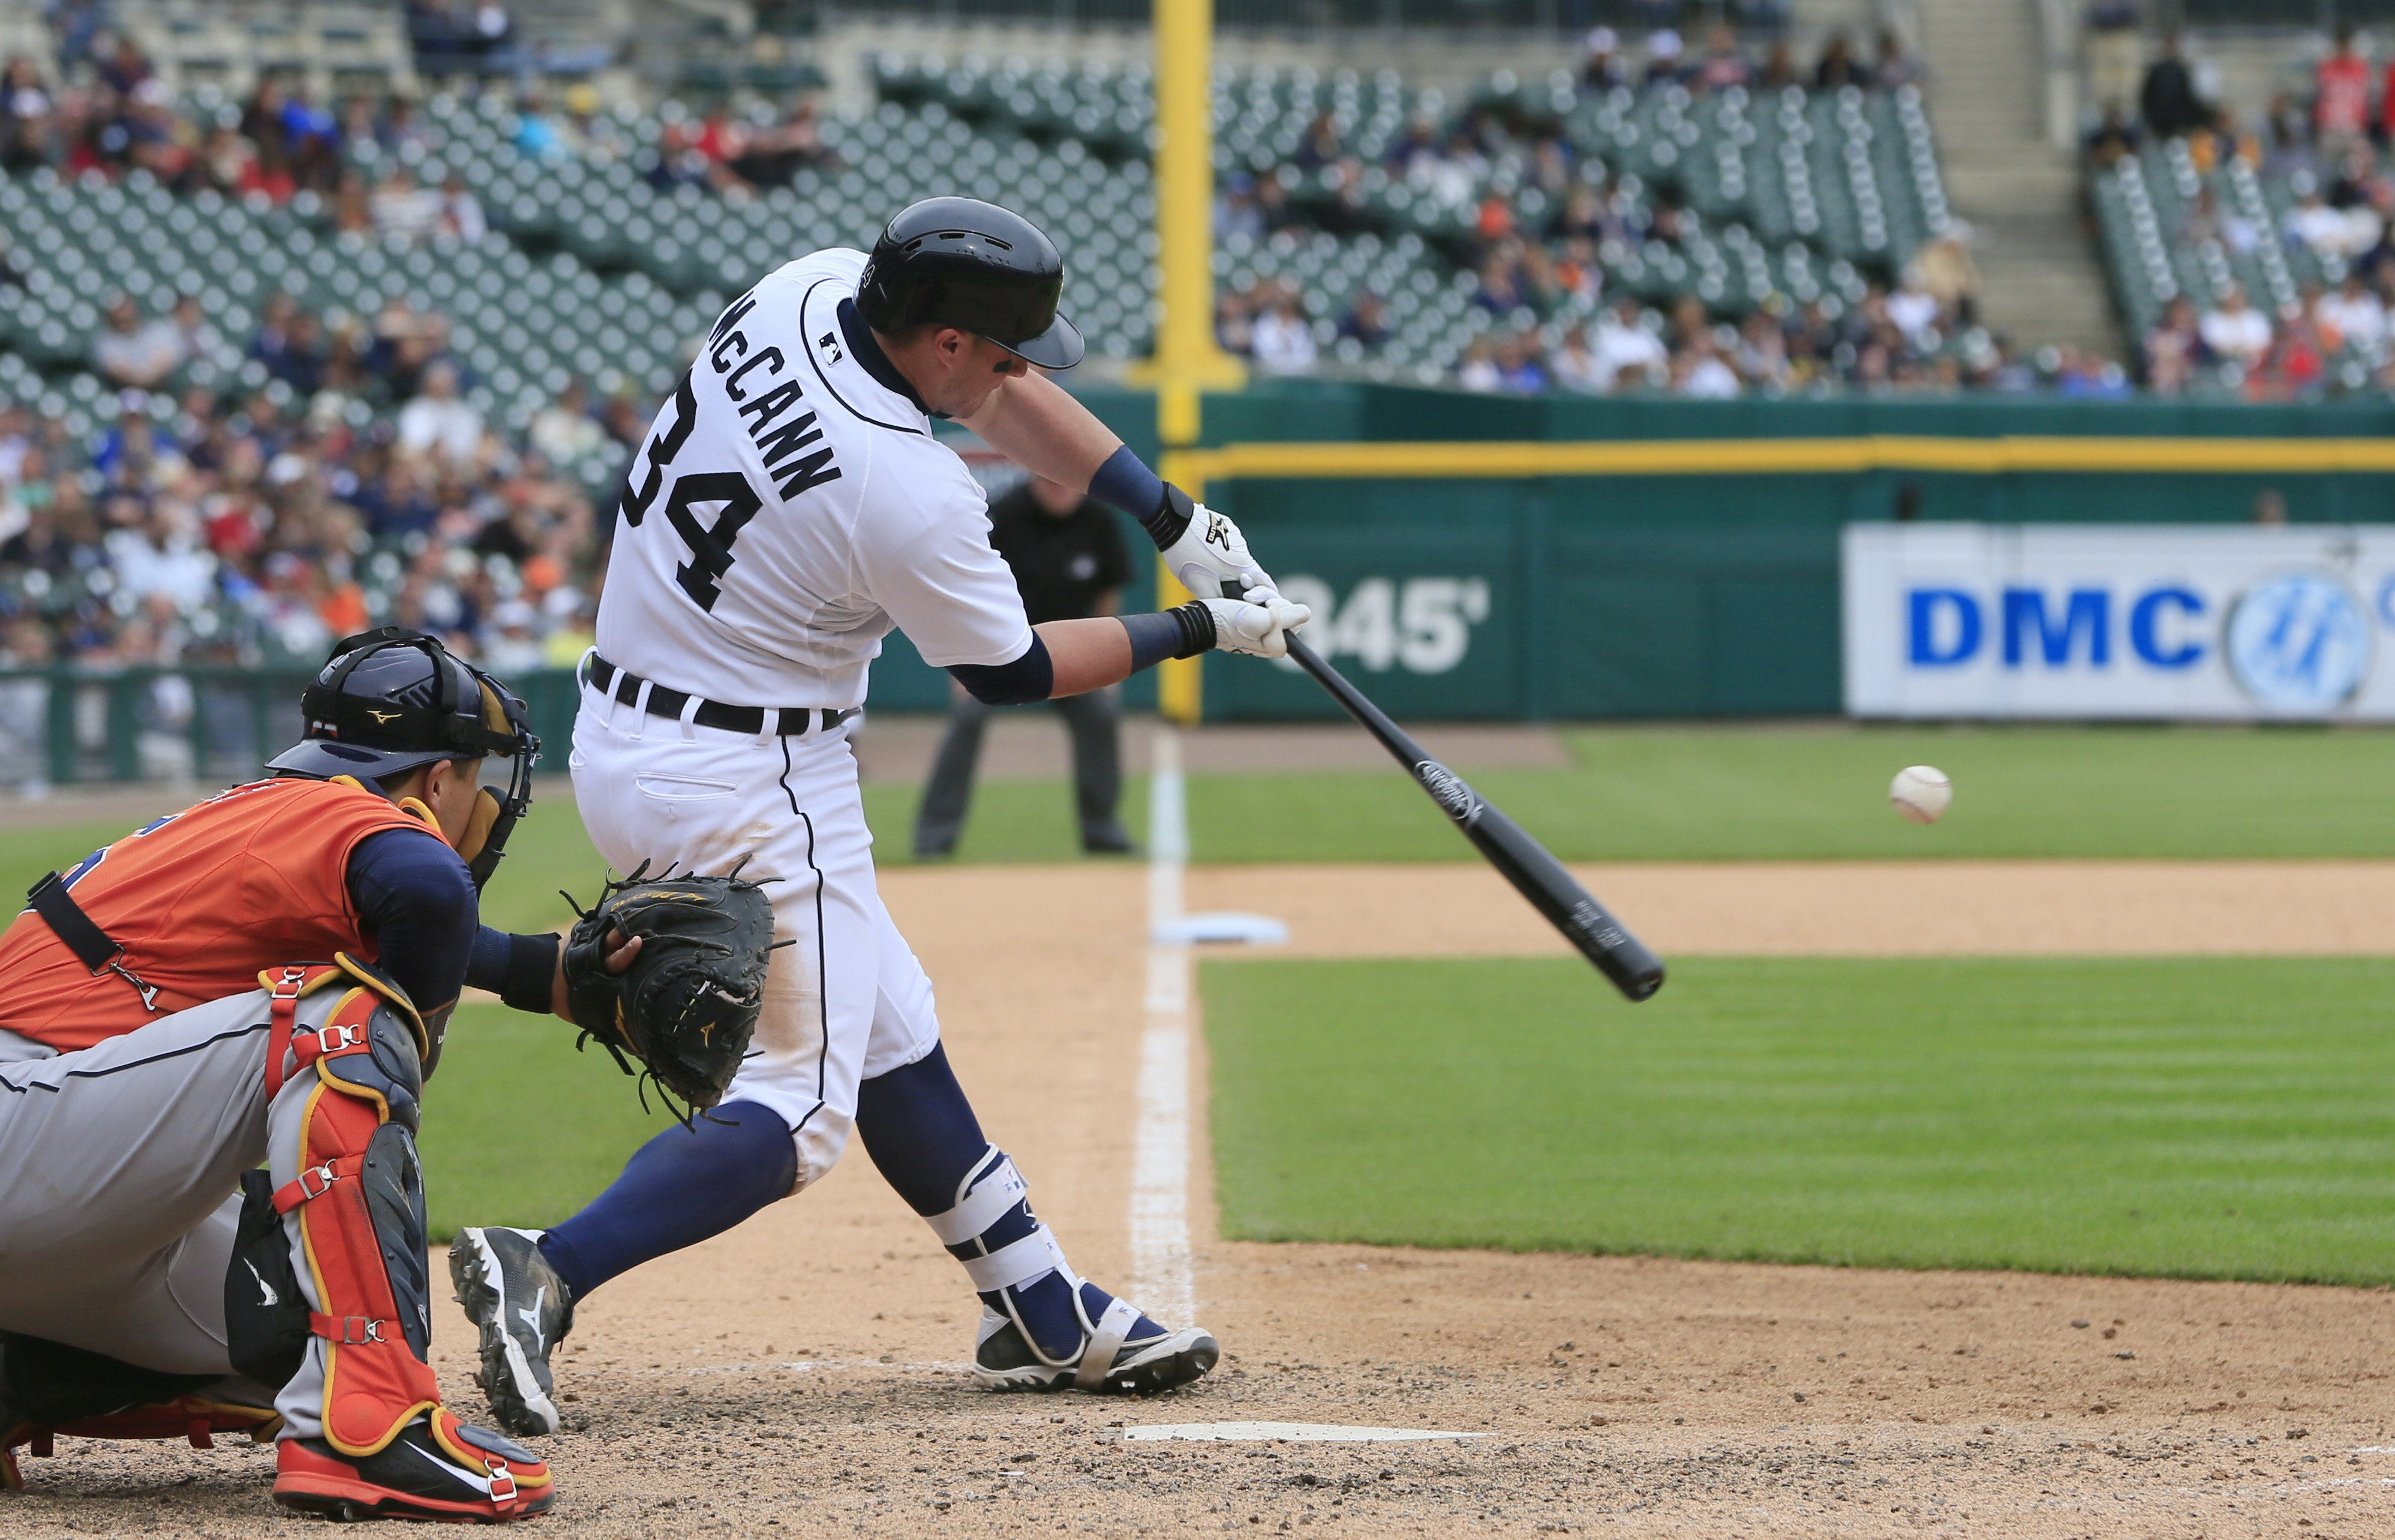 Detroit Tigers' James McCann connects for the game-winning home run during the 11th inning of a baseball game against the Houston Astros, Thursday, May 21, 2015, in Detroit. The Tigers defeated the Astros 6-5. (AP Photo/Carlos Osorio)